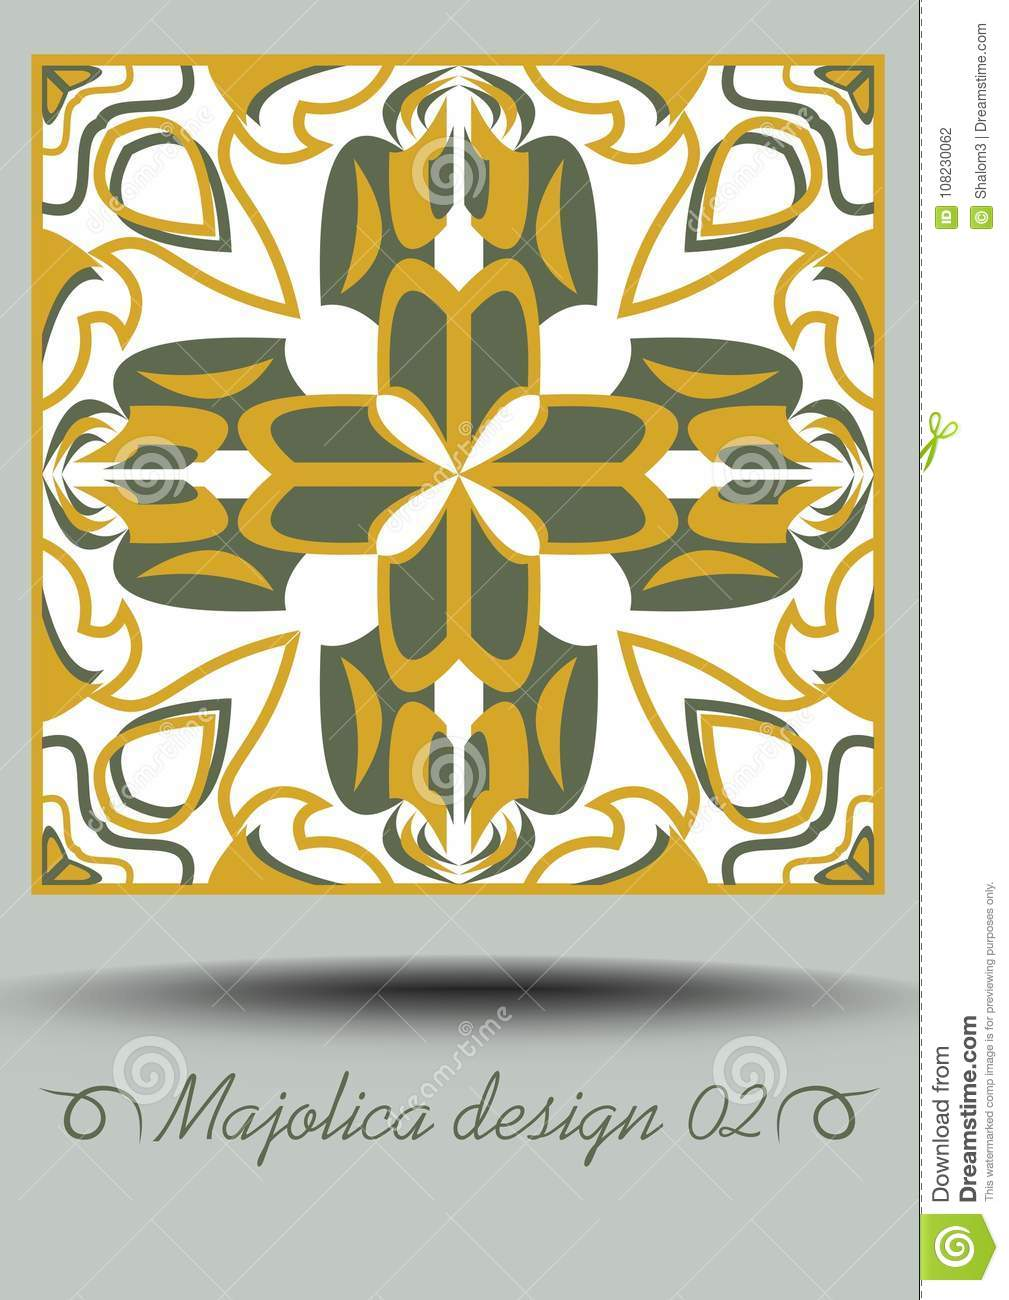 Faience Design Faience Ceramic Tile In Nostalgic Ocher And Olive Green Design